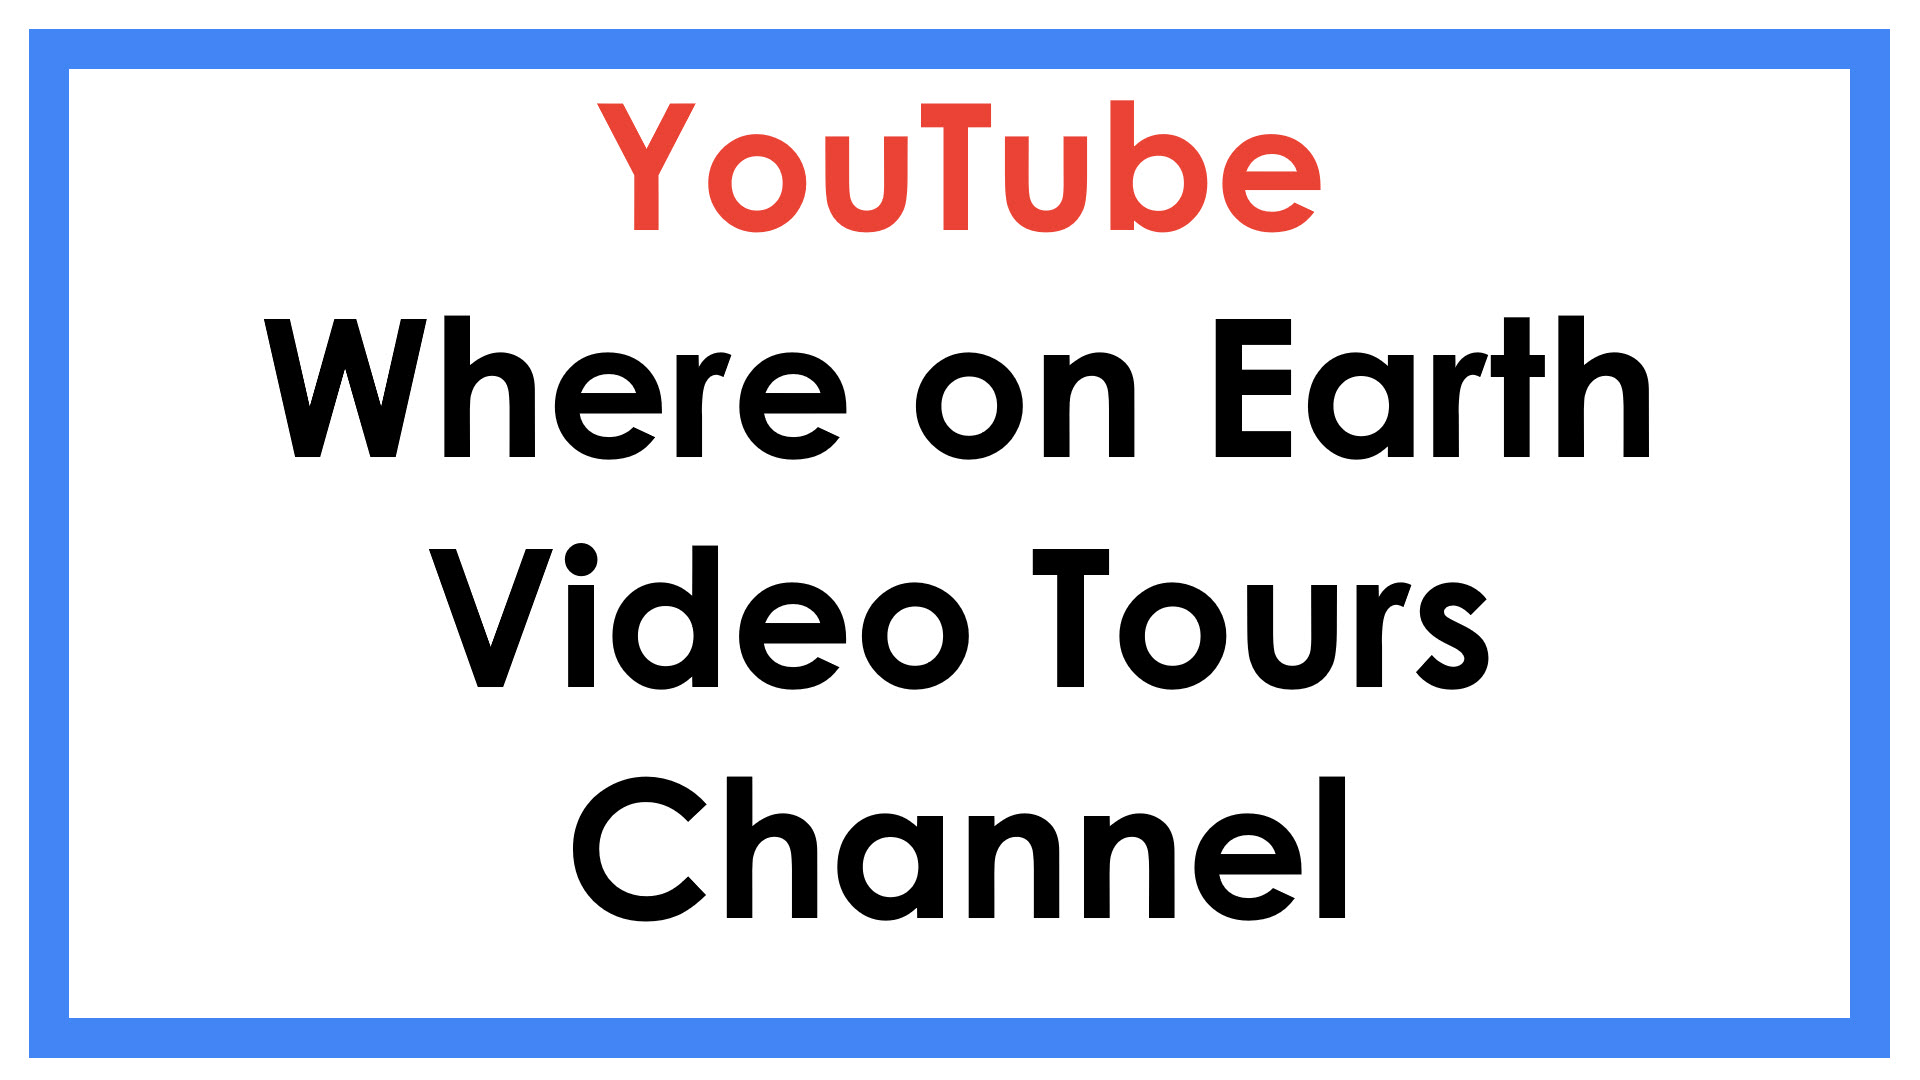 Where on Earth Video Tours Channel